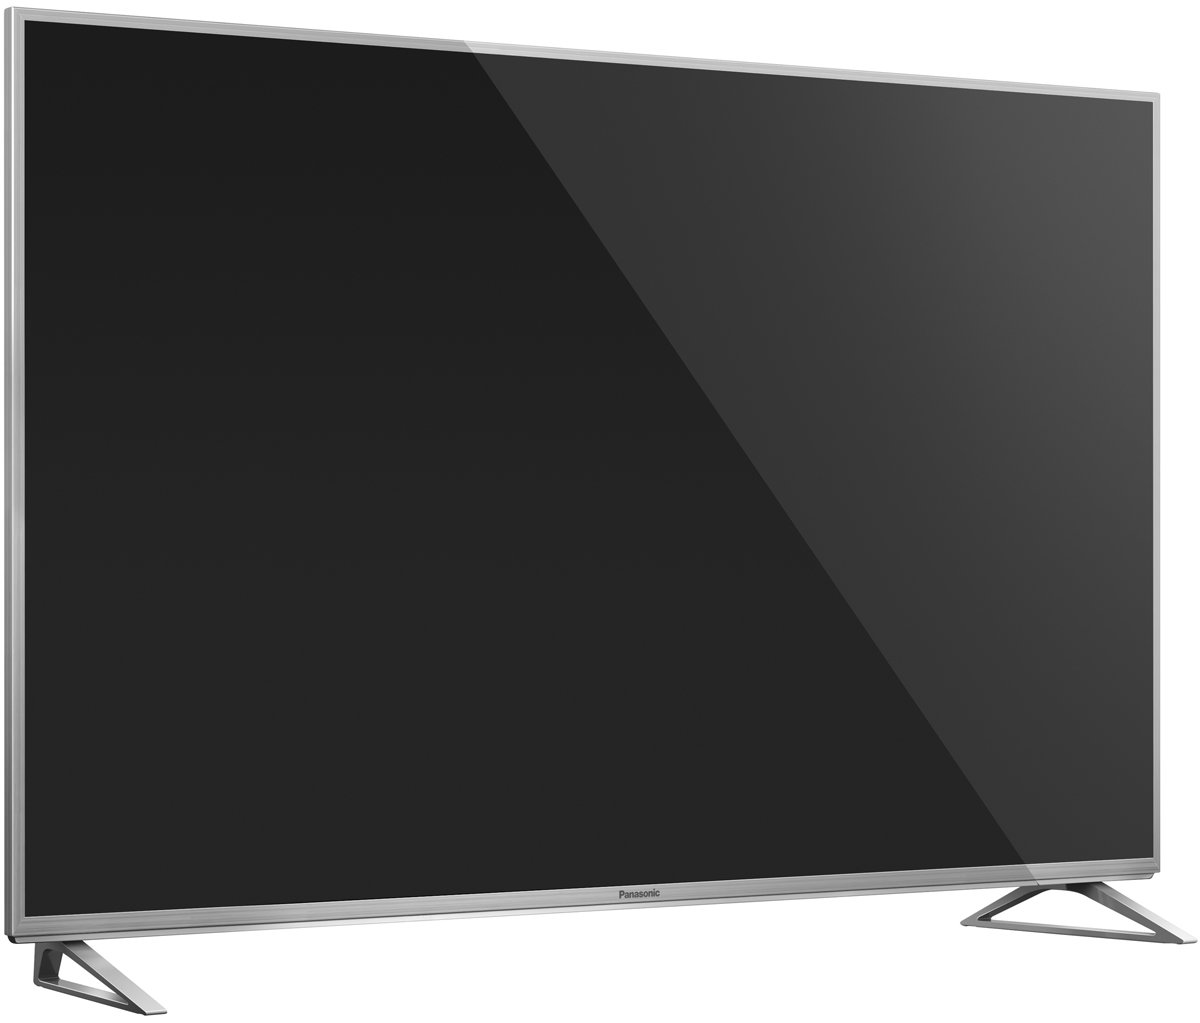 Panasonic TH-58DX700A 58 Inch 147cm Smart 4K UHD LED LCD TV ... abe7a8954d676